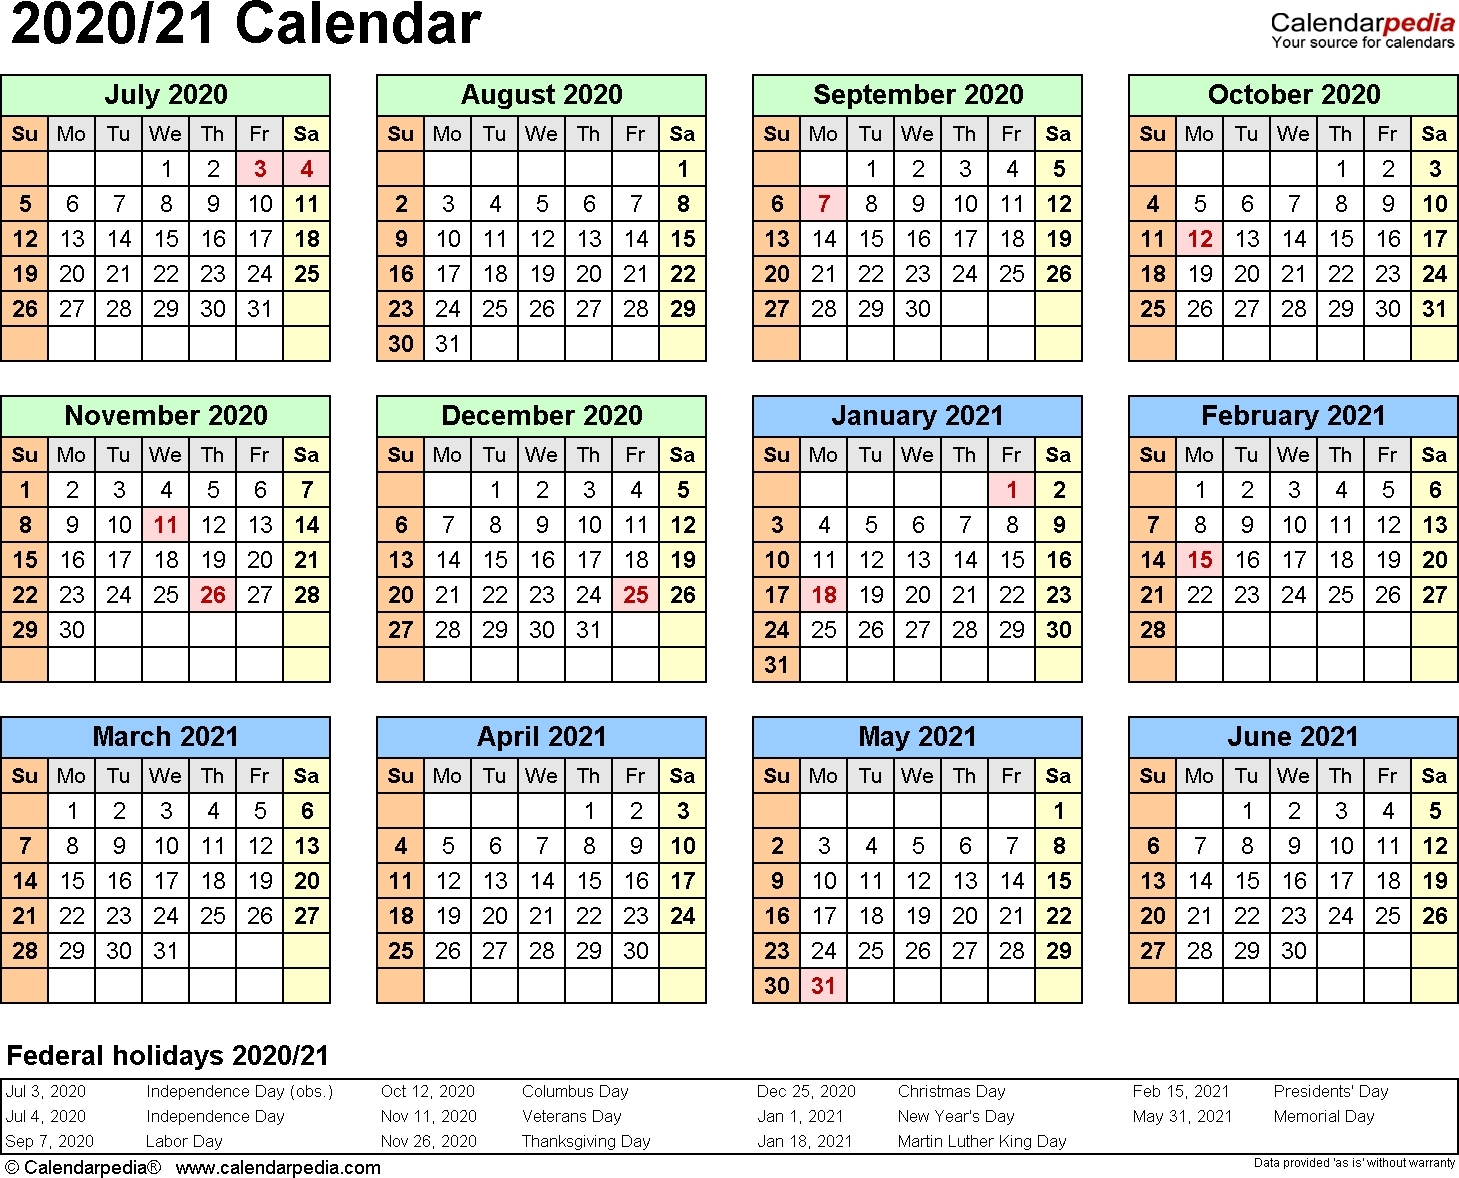 Calendarpedia 2020 Excel | Calendar For Planning  Financial Year Calendar 2020 2021